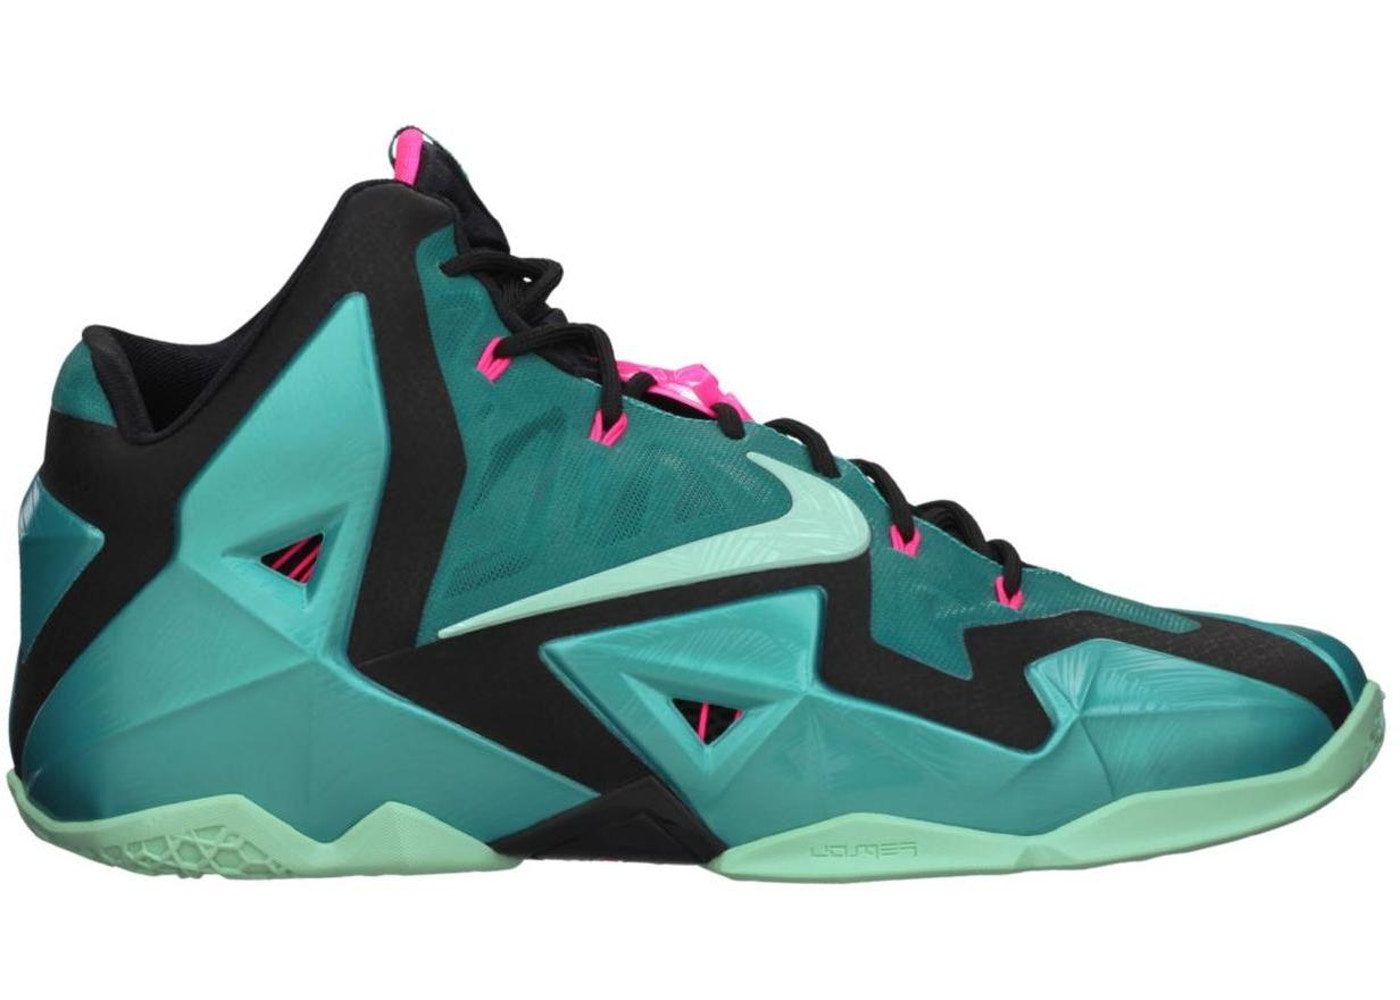 big sale 26a96 a533c LeBron 11 South Beach - 616175-330